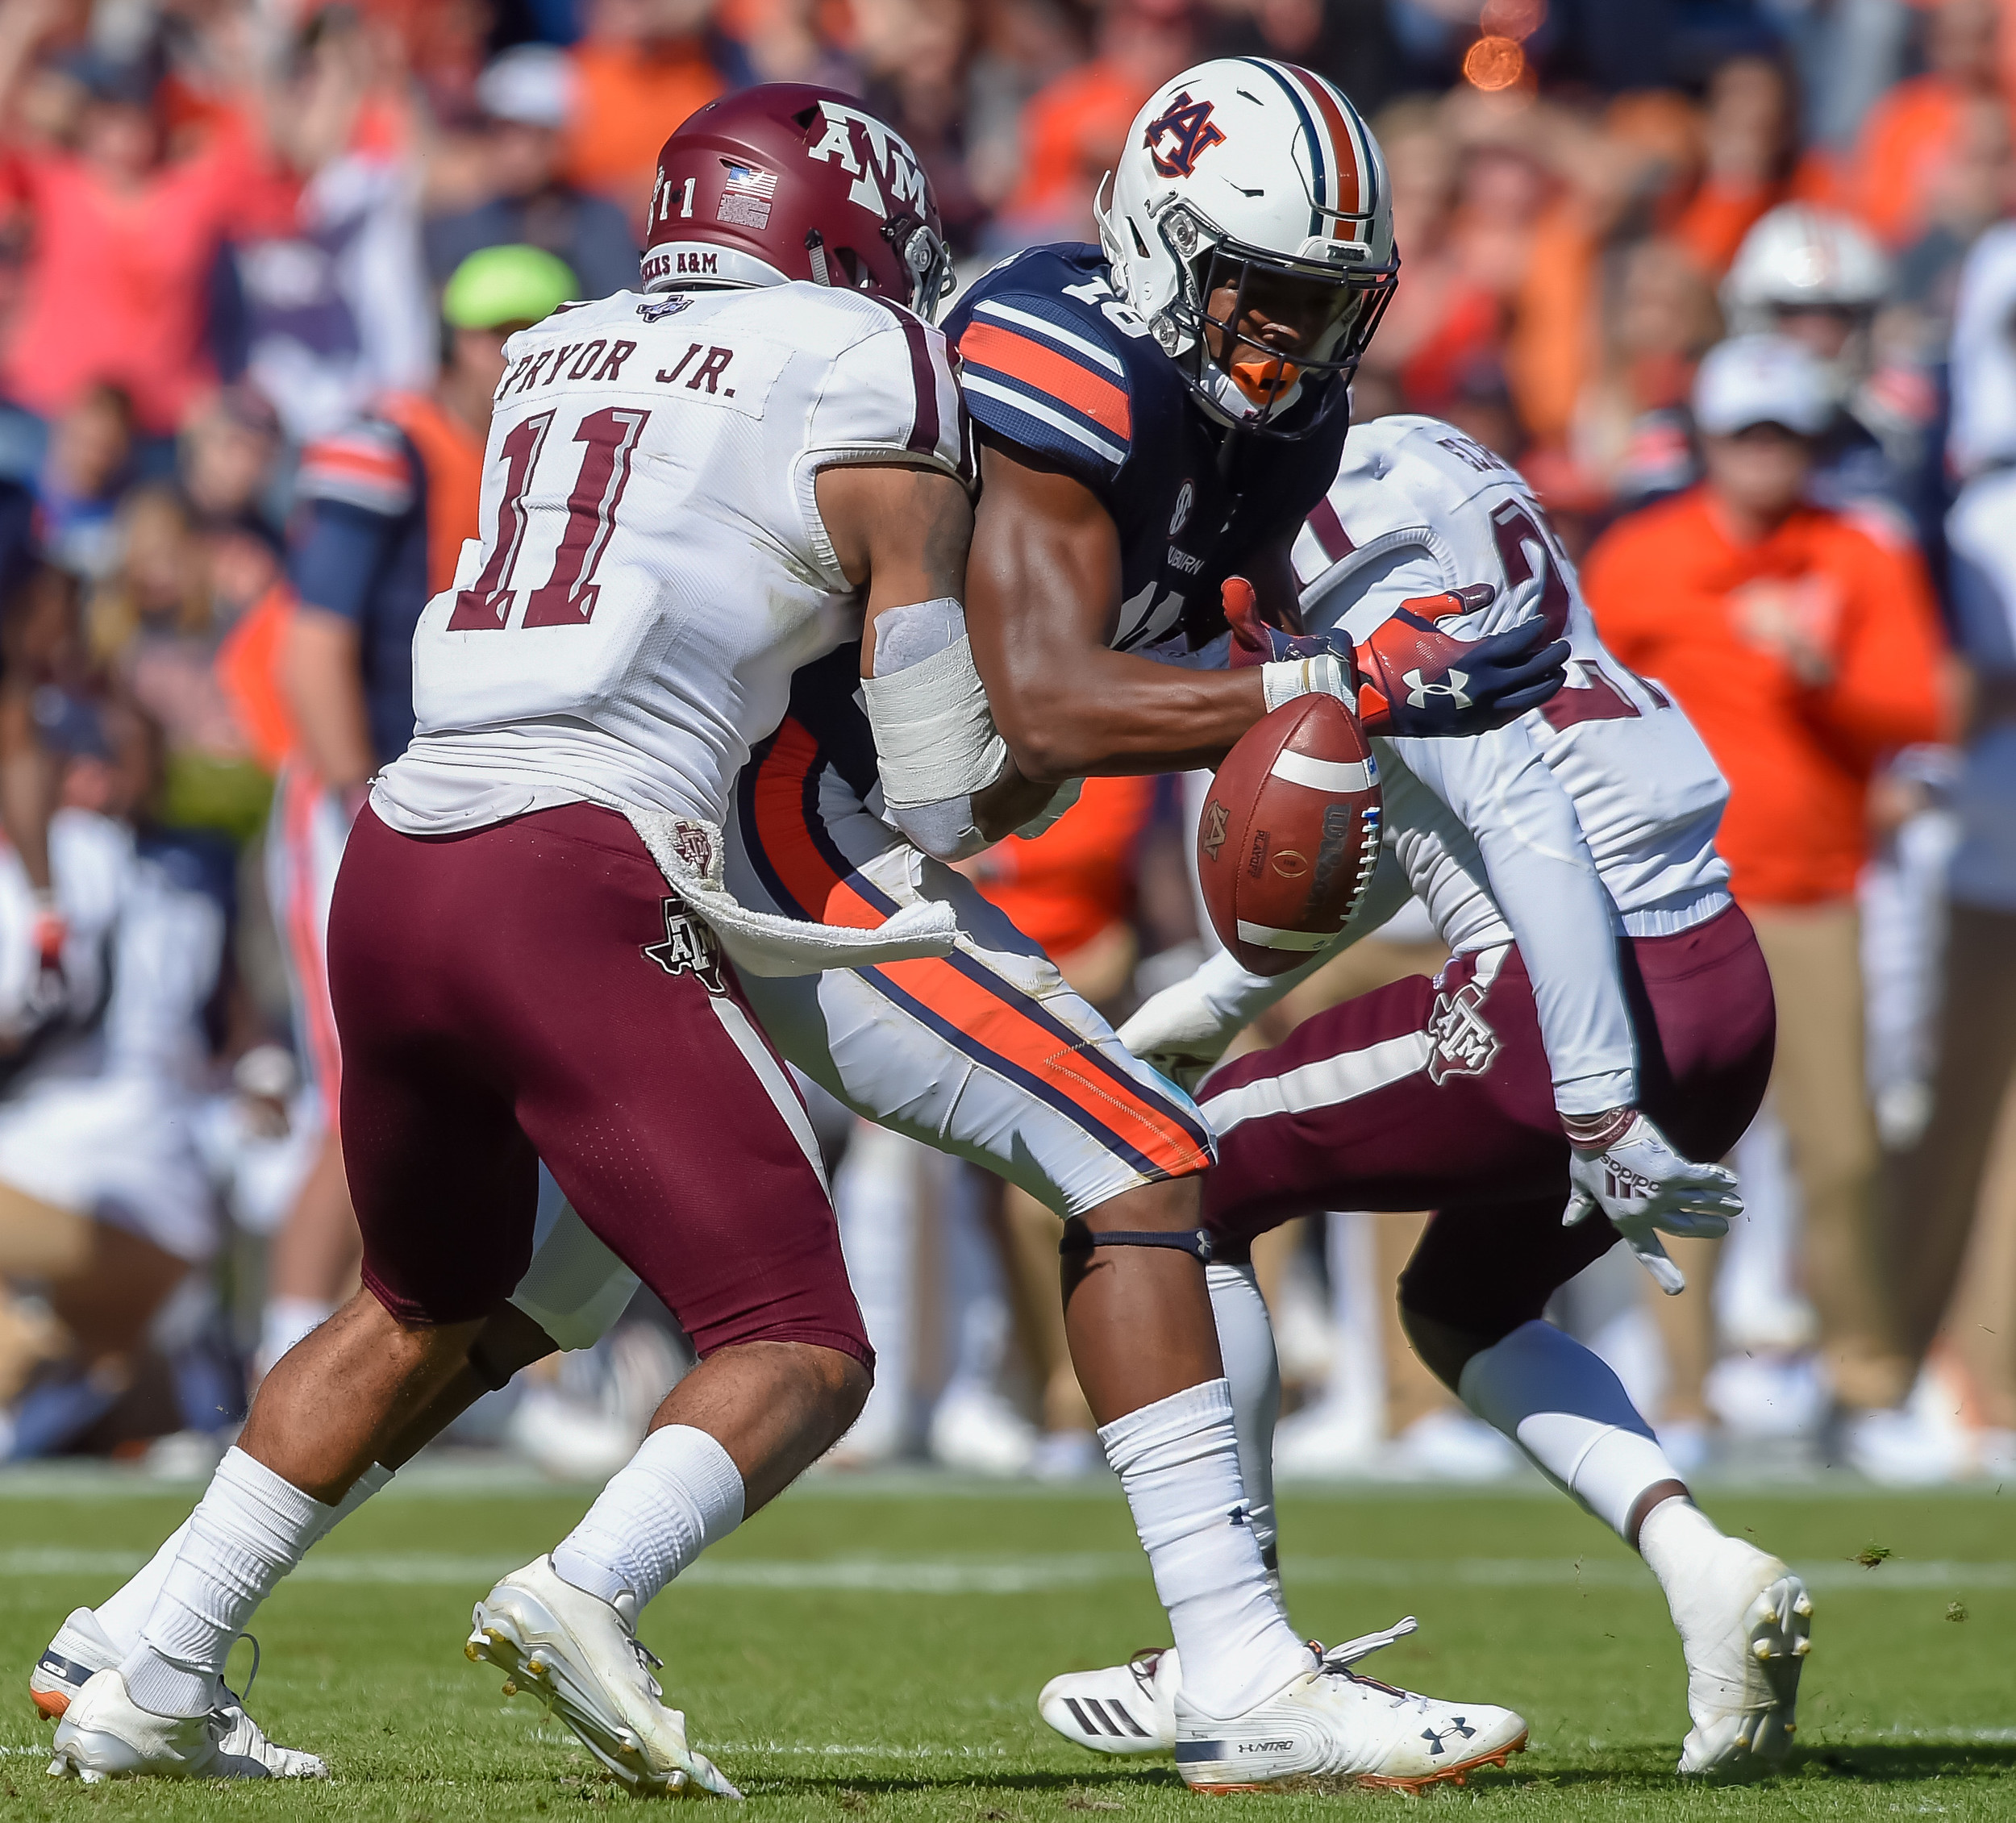 Texas A&M Aggies defensive back Larry Pryor (11) breaks up a pass intended for Auburn Tigers wide receiver Seth Williams (18) during the second half of an NCAA football game Saturday, November 3, 2018, at Jordan-Hare Stadium in Auburn, Ala. (Photo by Jeff Johnsey)